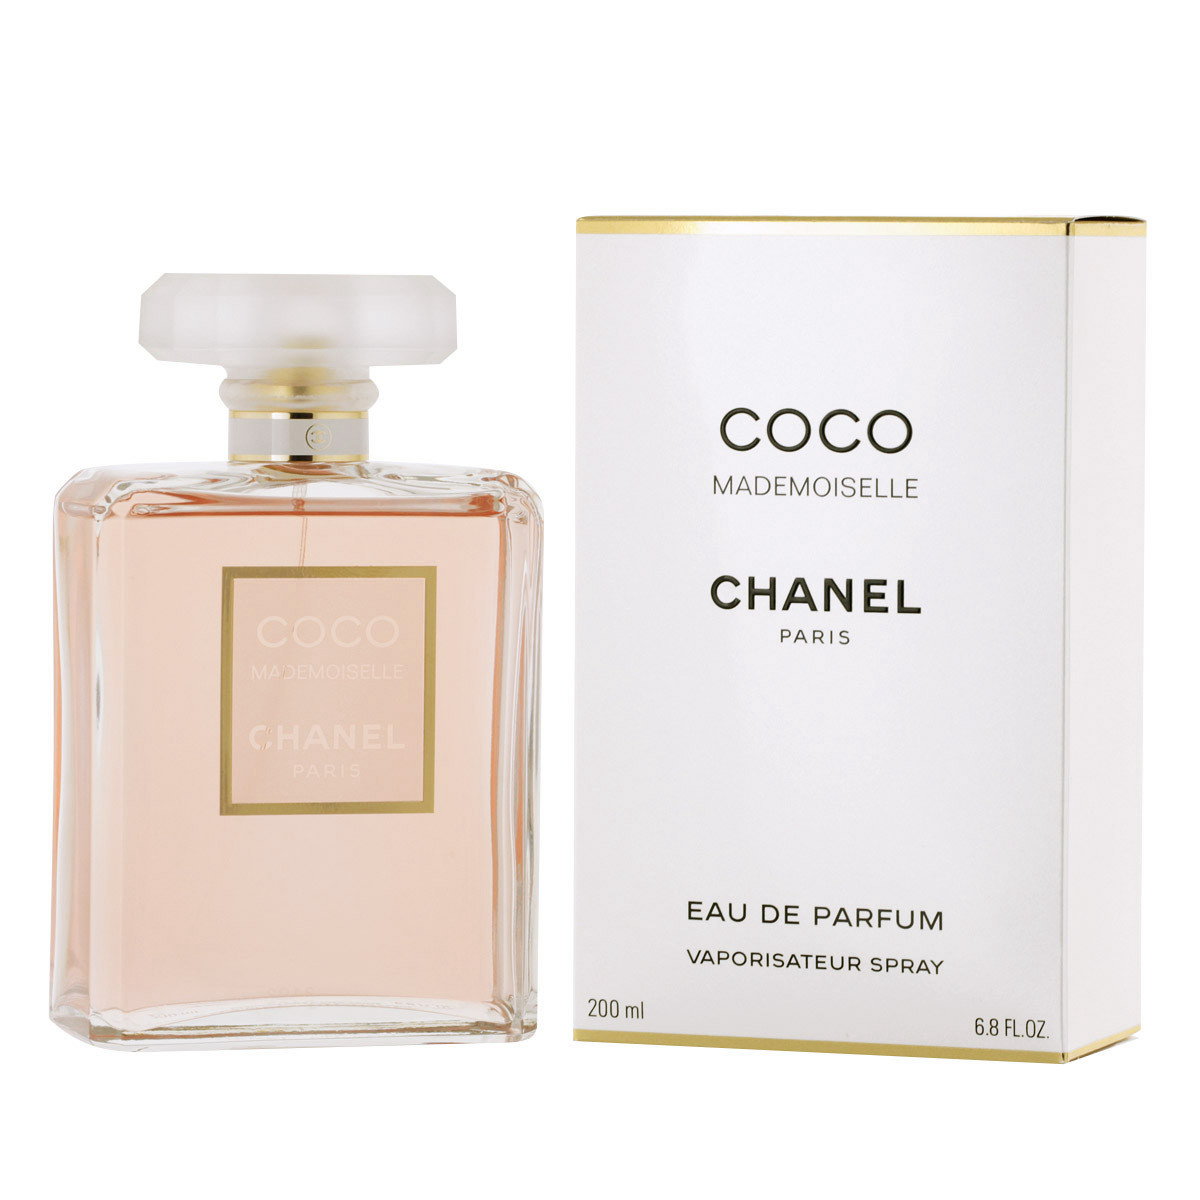 chanel coco mademoiselle eau de parfum 200 ml woman coco mademoiselle chanel marken. Black Bedroom Furniture Sets. Home Design Ideas